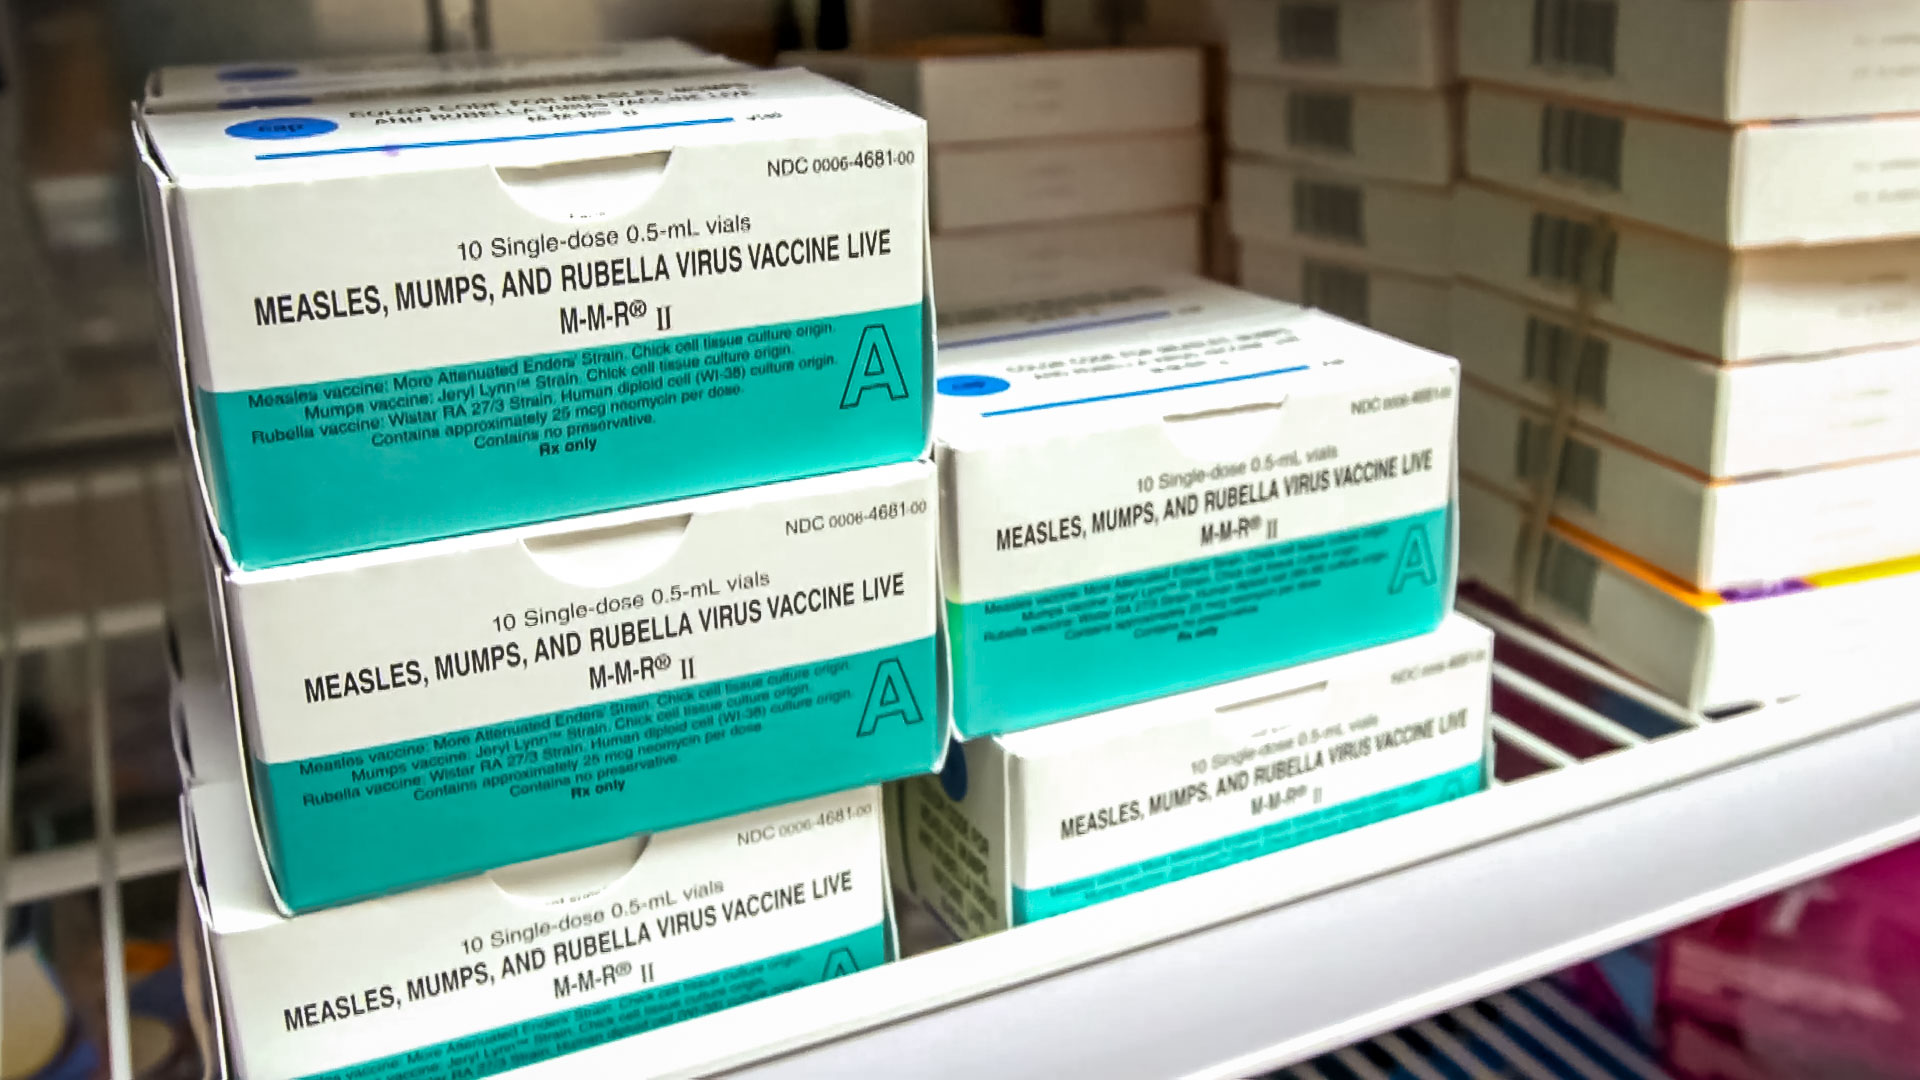 Autism Occurrence by MMR Vaccine Status Among US Children